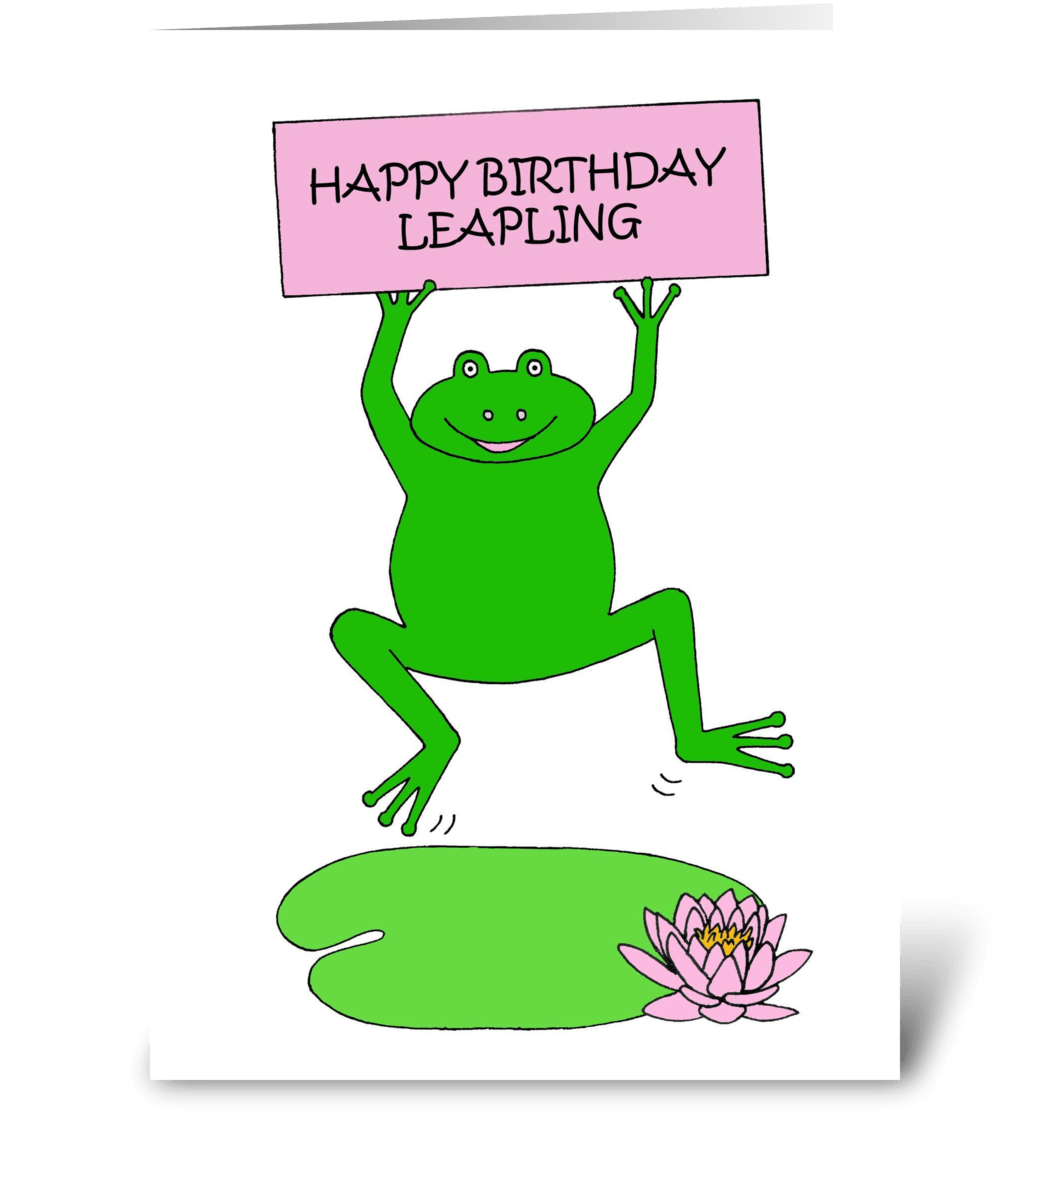 February 29th Leap Year Birthday